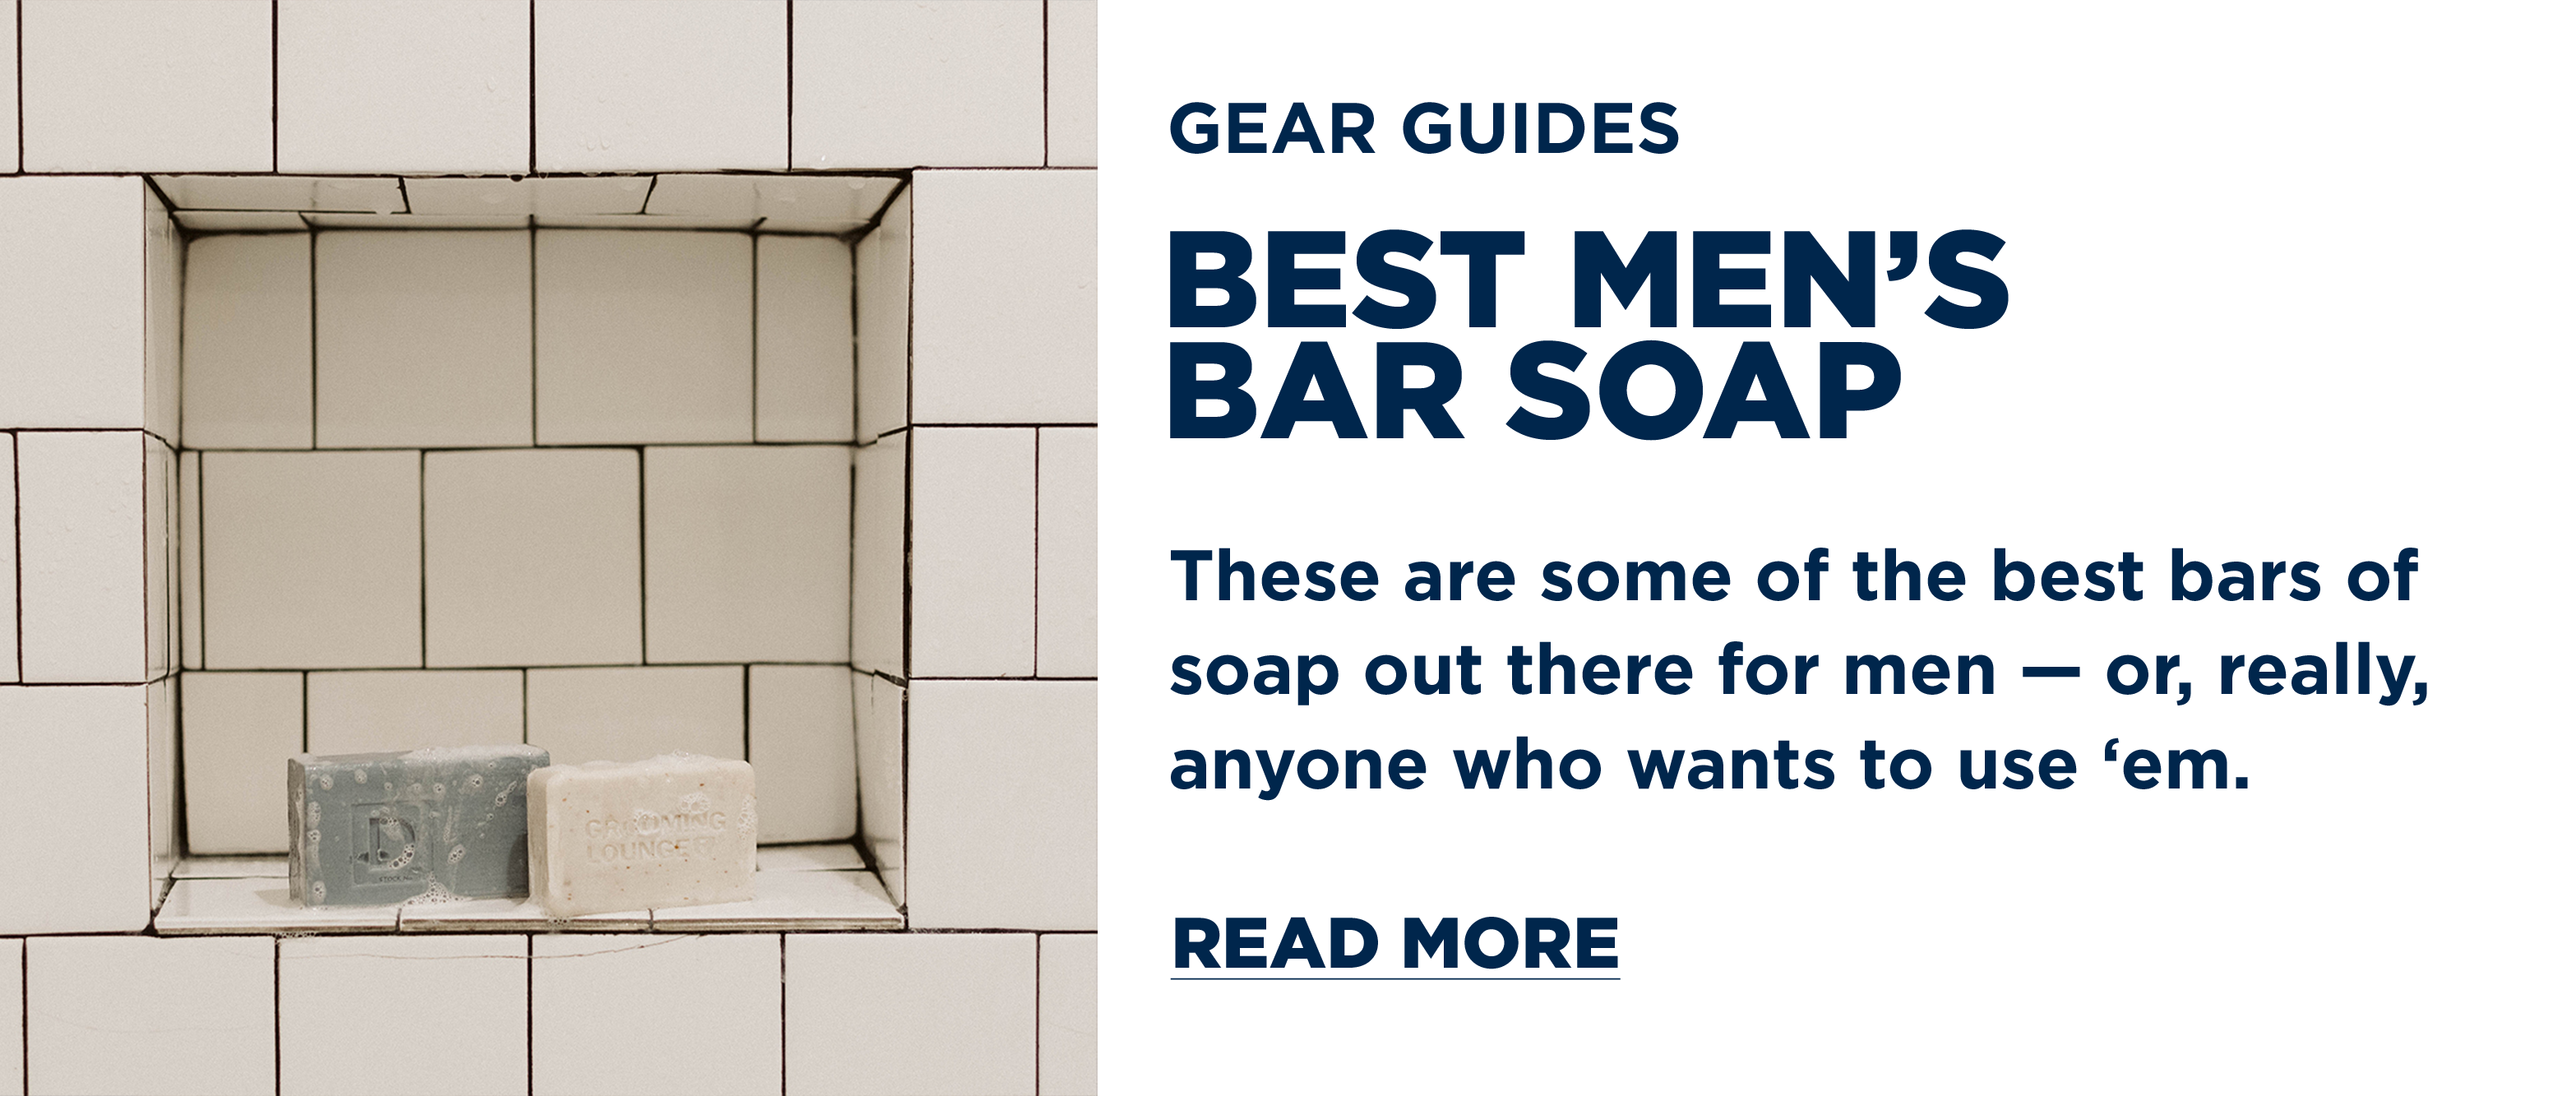 Find The Best Men's Bar Soaps, They're All Here